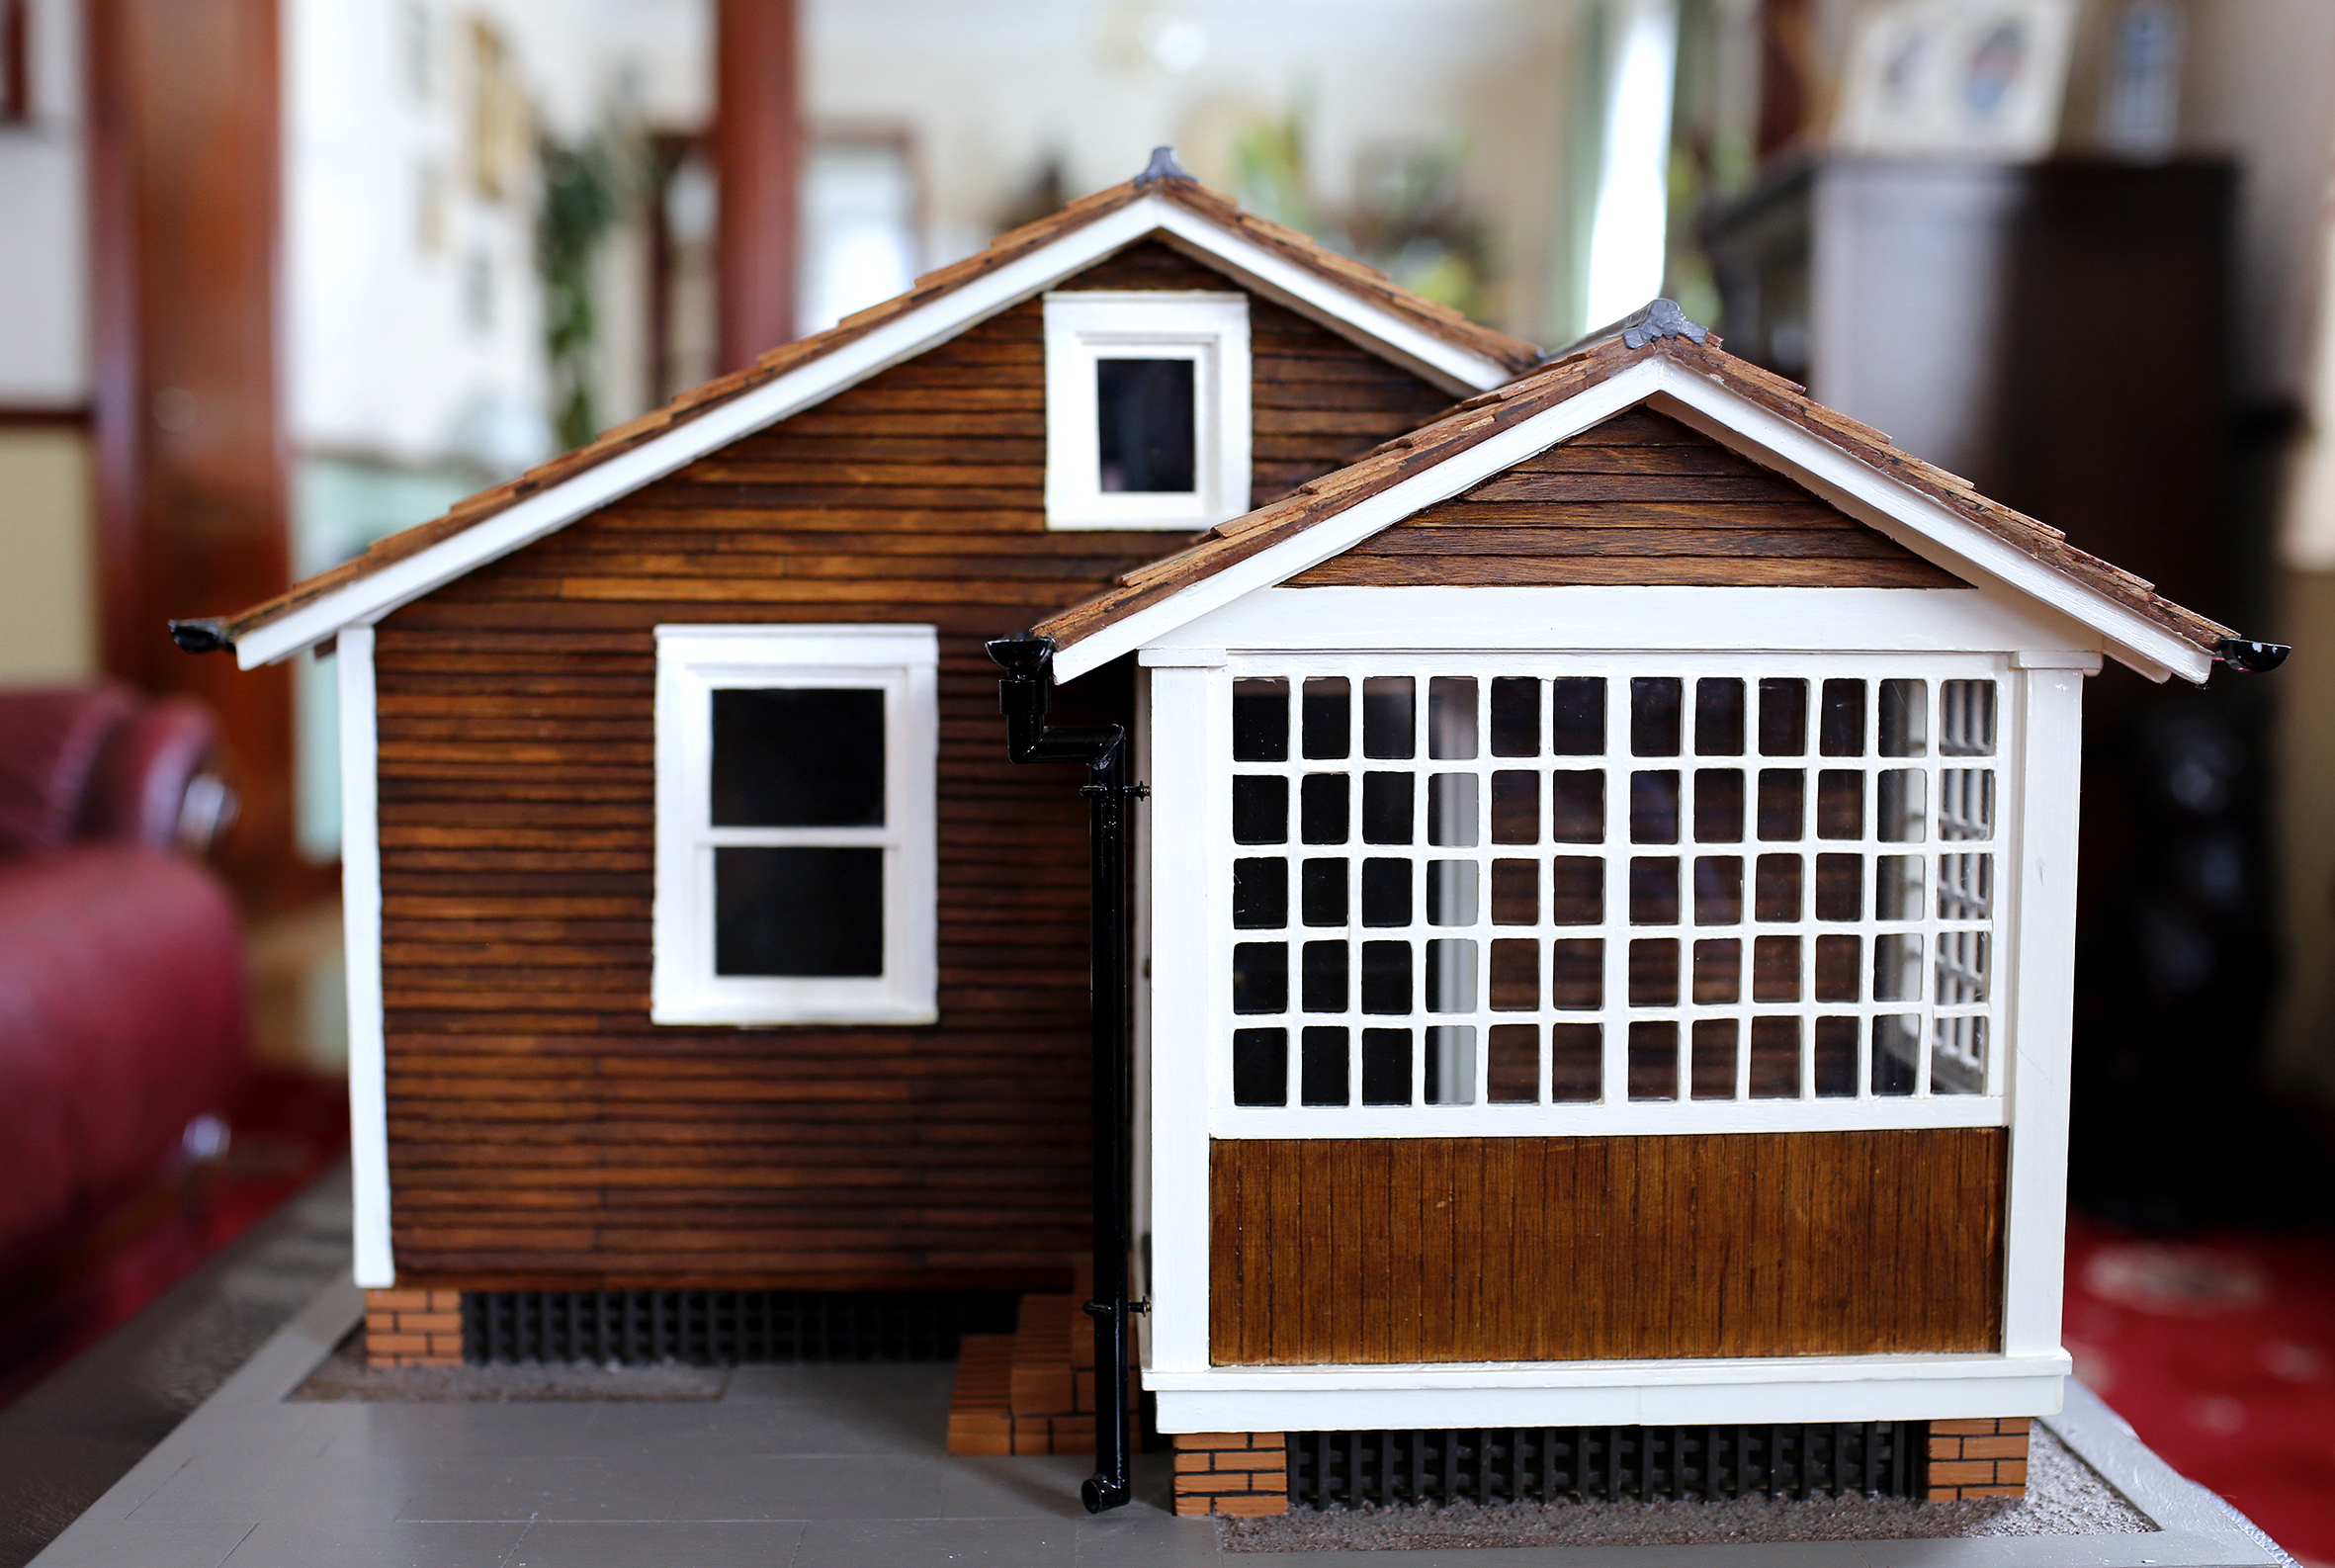 Model of an Austin Village home by resident Harry Blondell. Photograph by Stephen Burke.